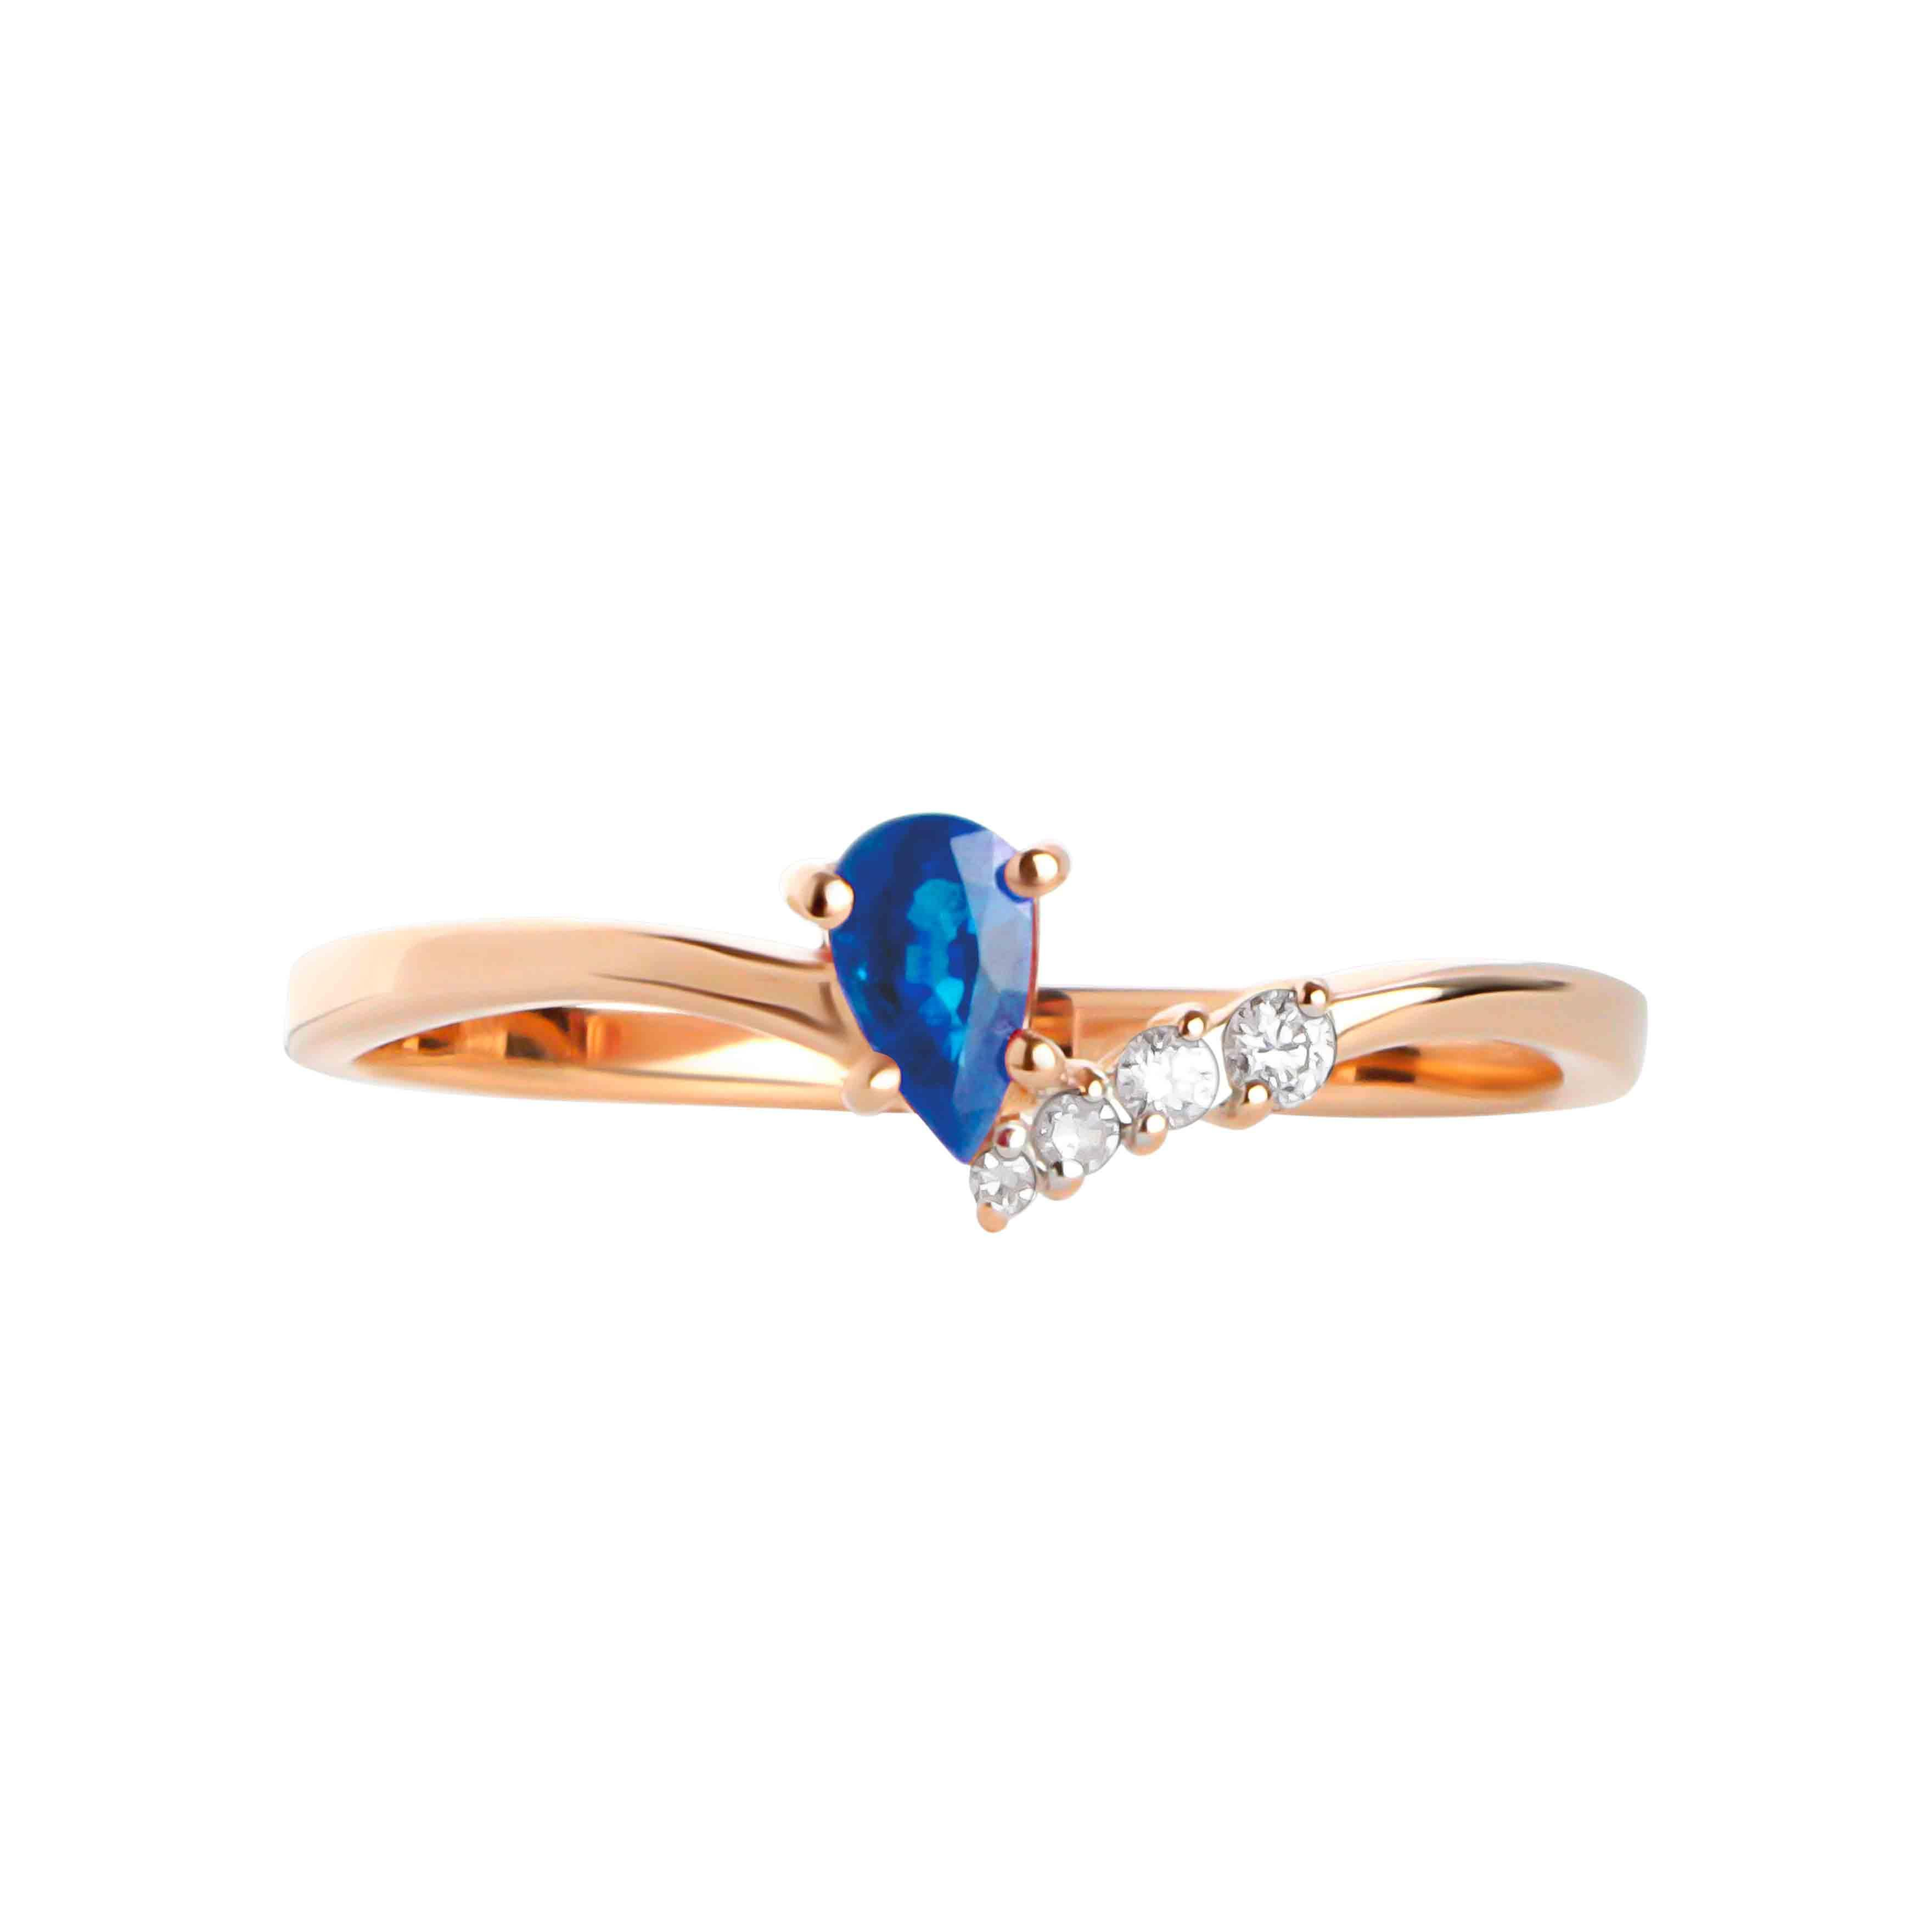 Pear-shape Sapphire and Diamond Ring. View 2